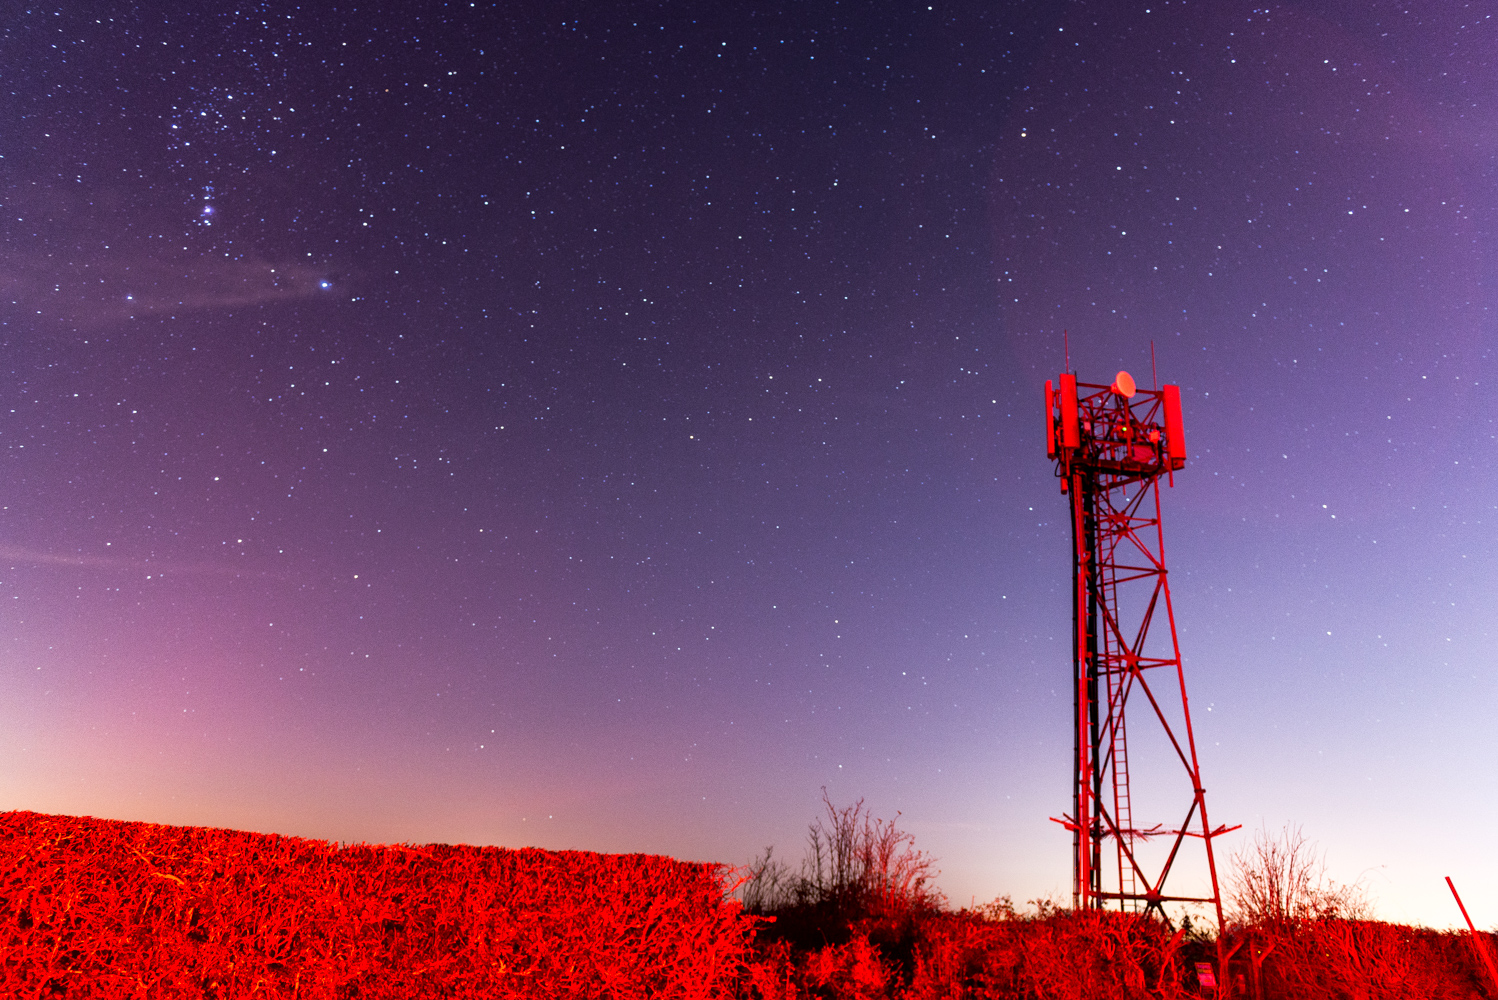 Futuristic Landscape Photography, Paul Hands, Burbage, Hinckley, Leicestershire, Midlands, England, United Kingdom, Great Britain, Europe